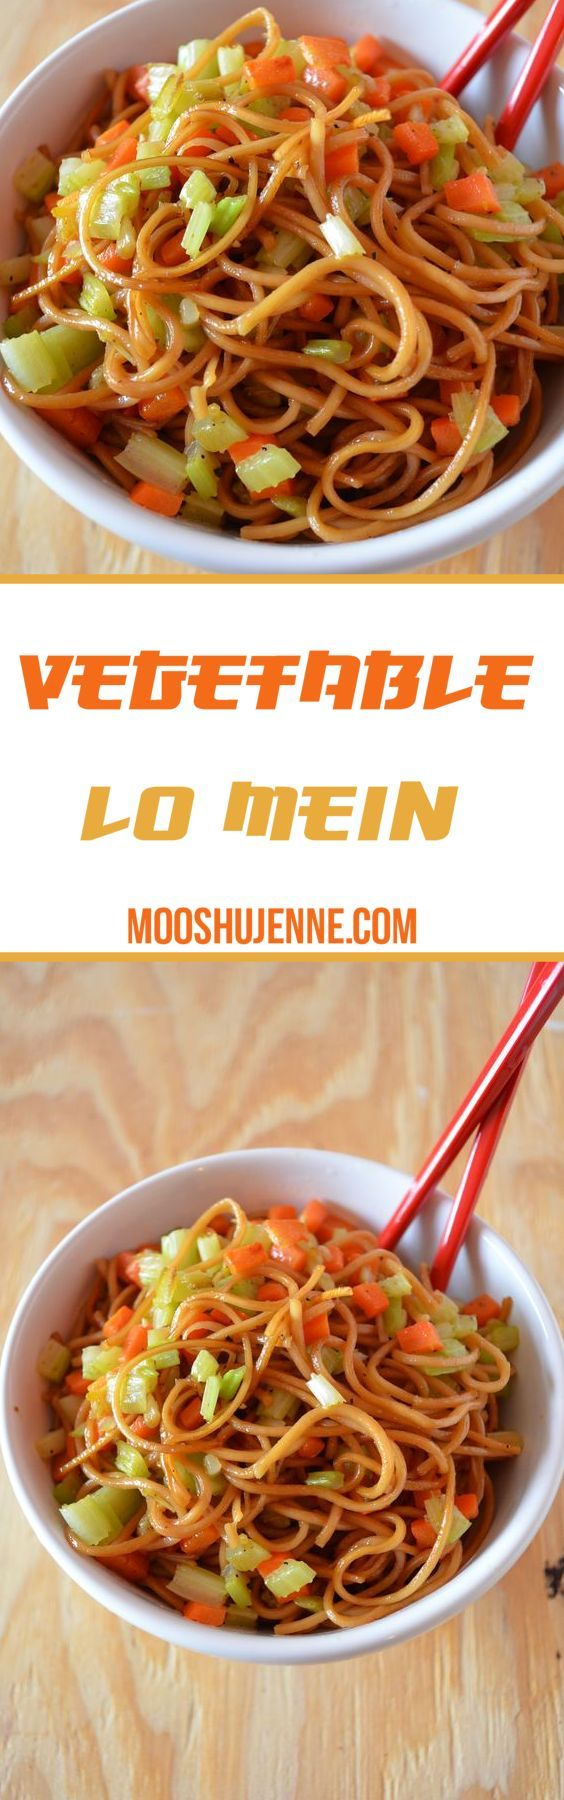 Vegetable lo mein is one the simplest dishes to me in Chinese cuisine. There is plenty of flavors. You can add whatever you would like IE: mushrooms, carrots, snow peas, peas, celery, or whatever meat you choose.